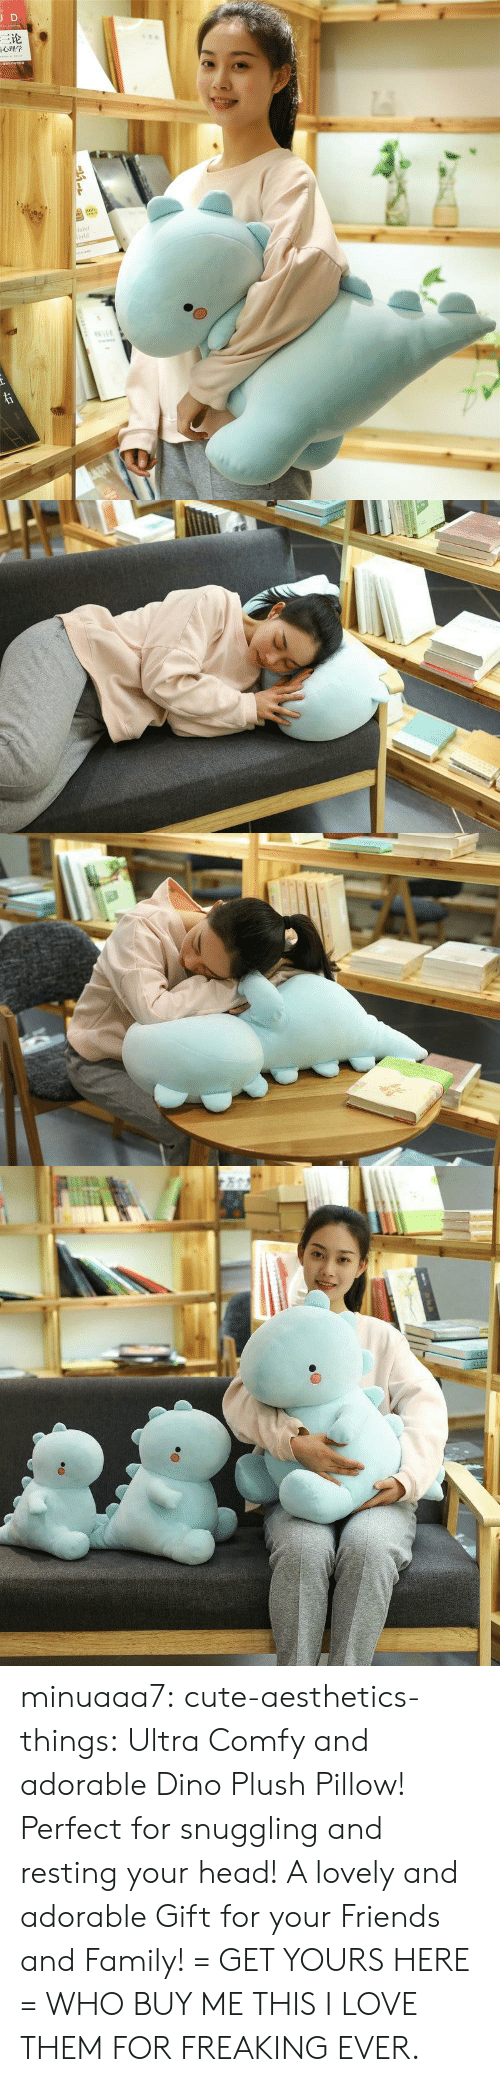 Cute, Family, and Friends: JD  三论  laint  orld  TNAR  ww.e minuaaa7:  cute-aesthetics-things:  Ultra Comfy and adorable Dino Plush Pillow! Perfect for snuggling and resting your head! A lovely and adorable Gift for your Friends and Family! = GET YOURS HERE =  WHO BUY ME THIS I LOVE THEM FOR FREAKING EVER.